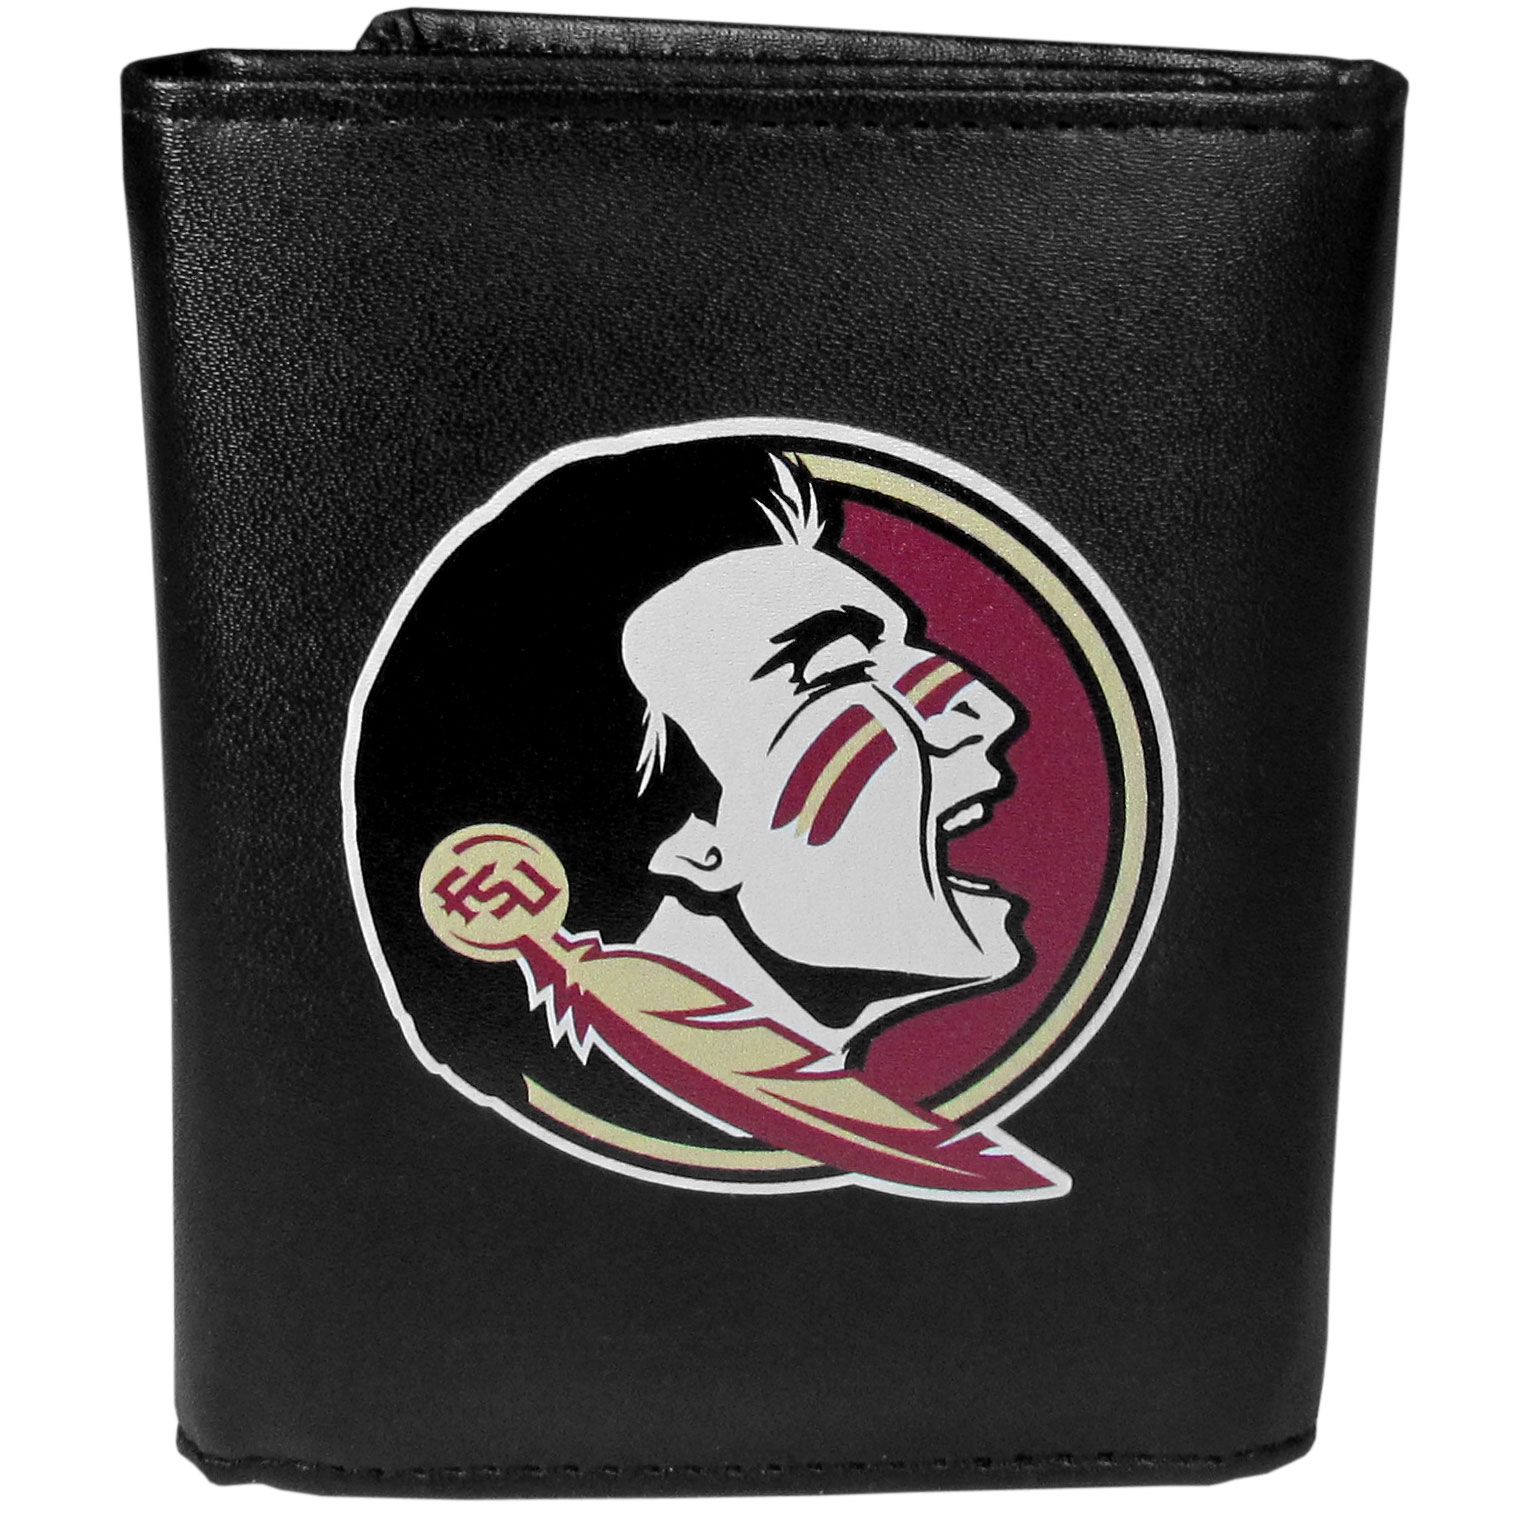 Florida St. Seminoles Leather Tri-fold Wallet, Large Logo - Our classic fine leather tri-fold wallet is meticulously crafted with genuine leather that will age beautifully so you will have a quality wallet for years to come. This is fan apparel at its finest. The wallet is packed with organizational  features; lots of credit card slots, large billfold pocket, and a window ID slot. The front of the wallet features an extra large Florida St. Seminoles printed logo.